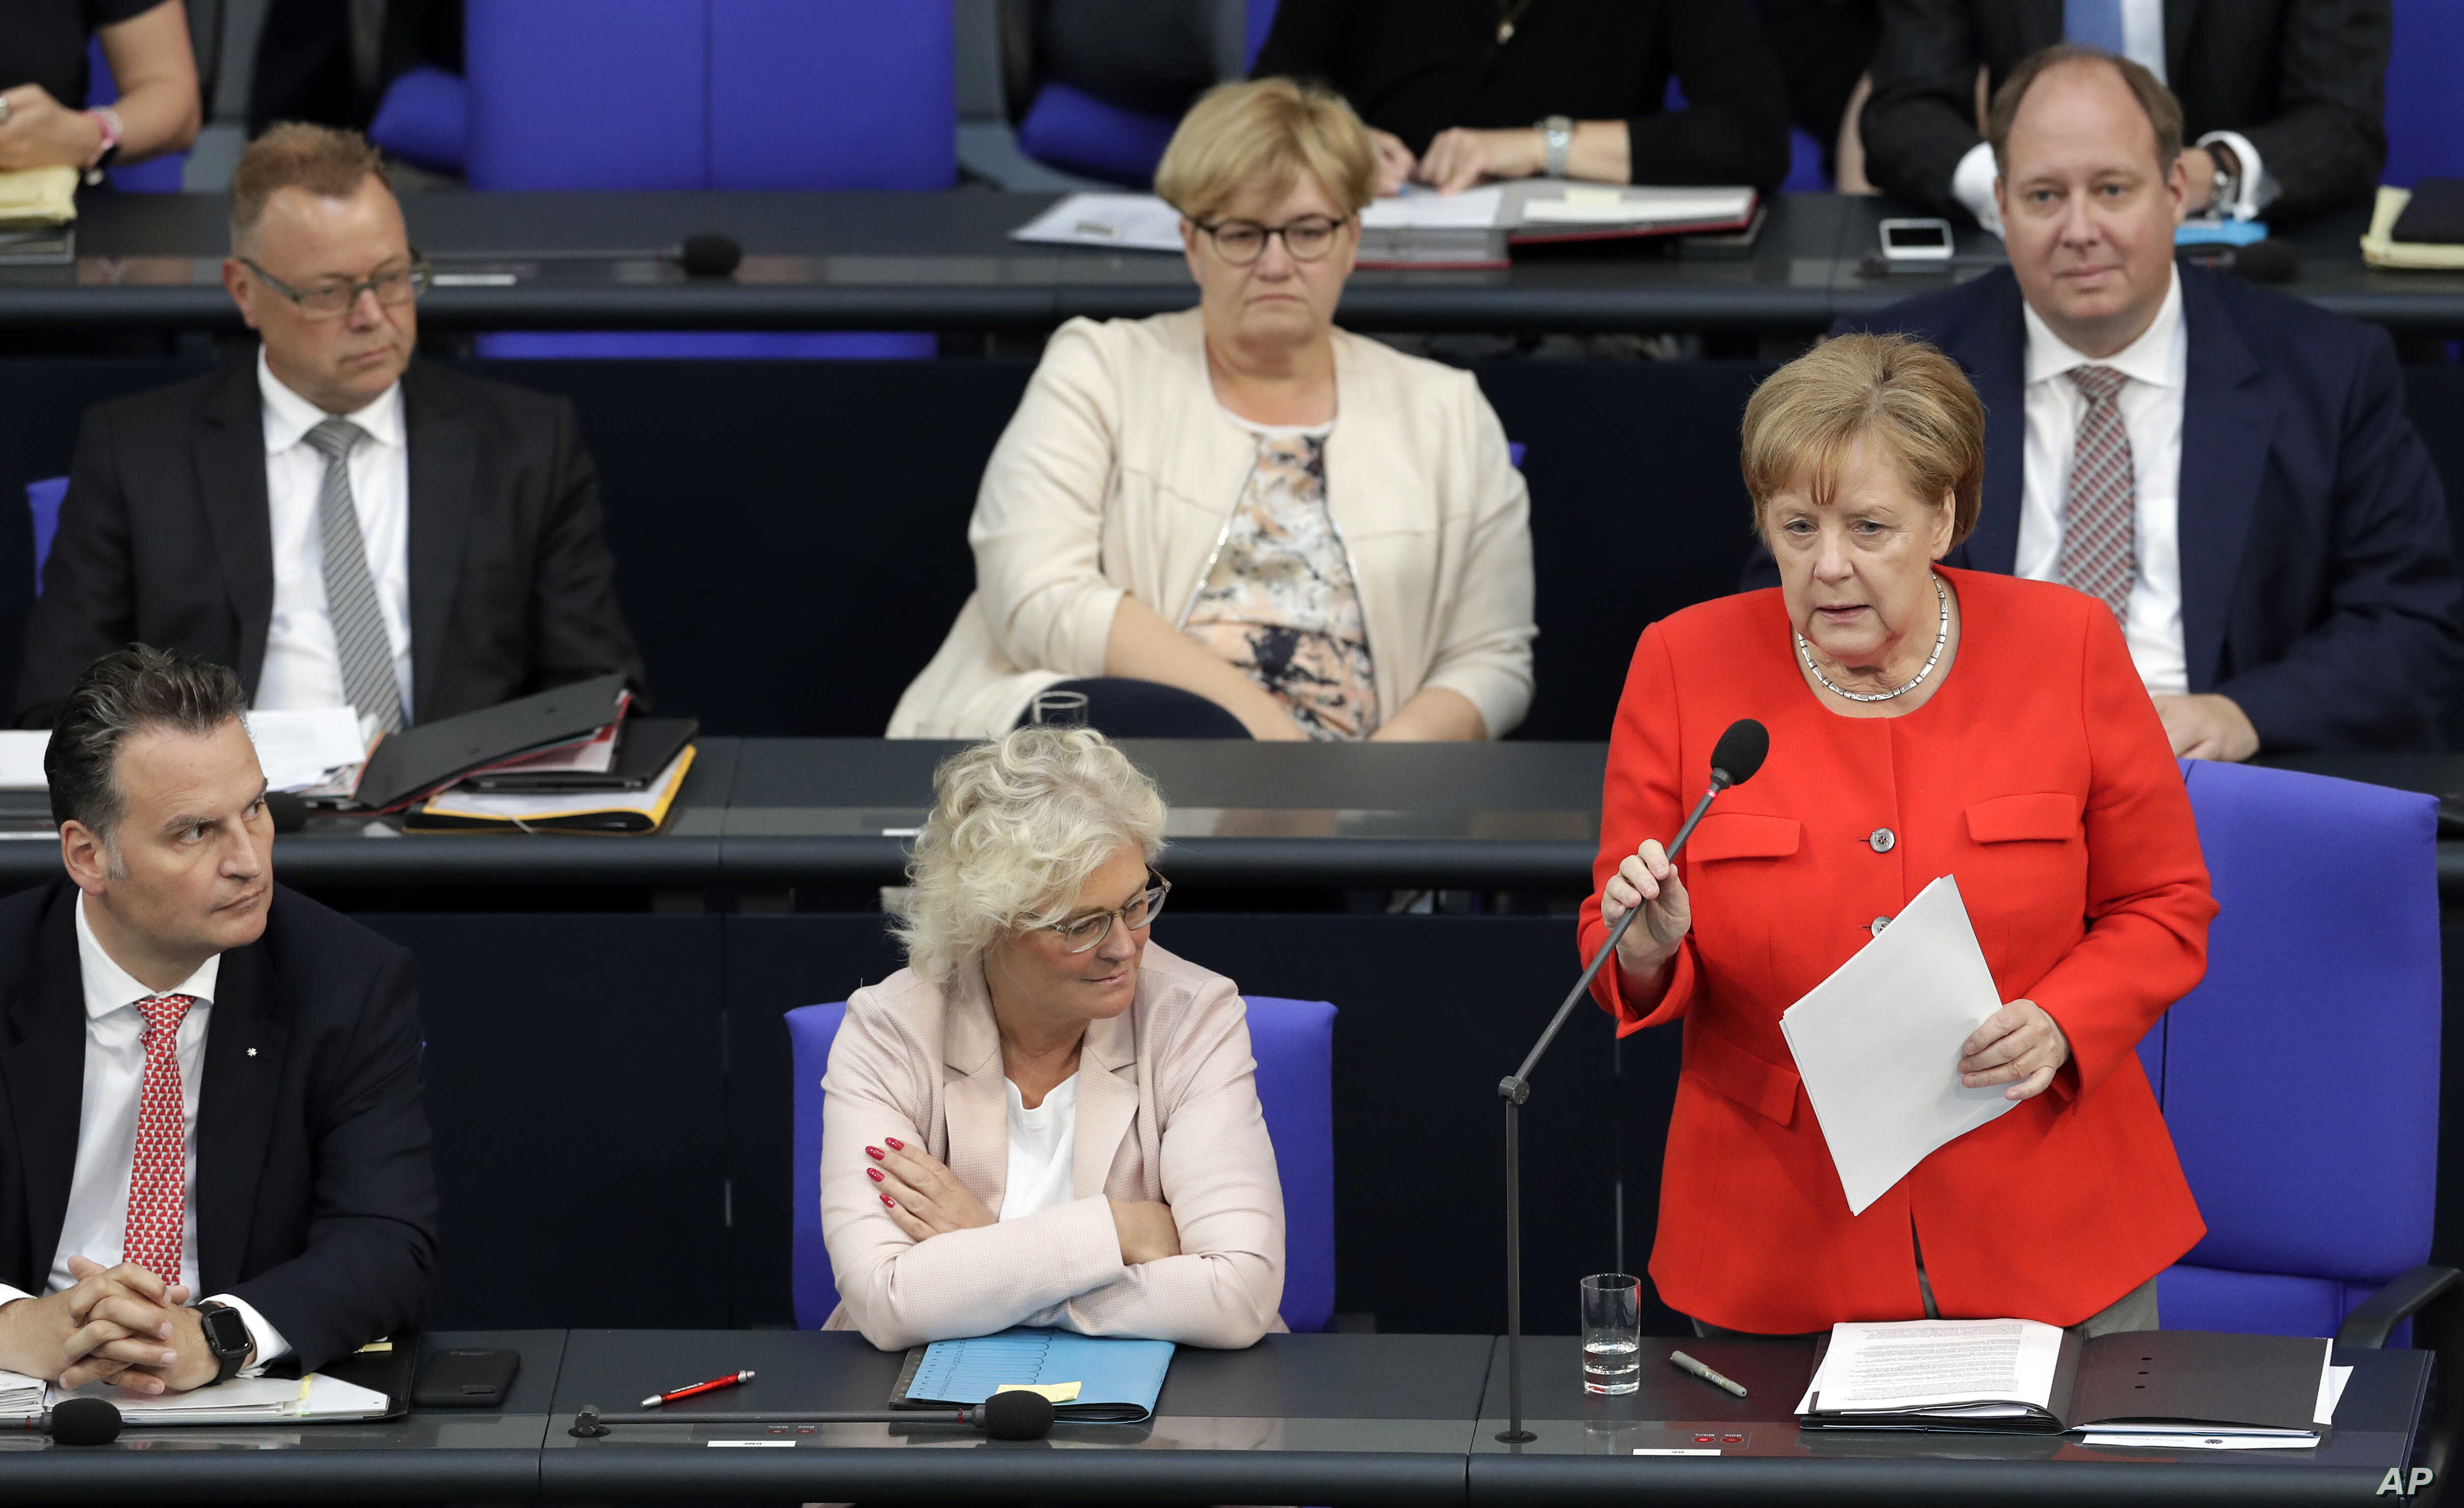 German Chancellor Angela Merkel delivers a statement on the G-7 summit prior to a government questioning as part of a meeting of the German parliament, Bundestag, at the Reichstag building in Berlin, Germany, June 6, 2018.